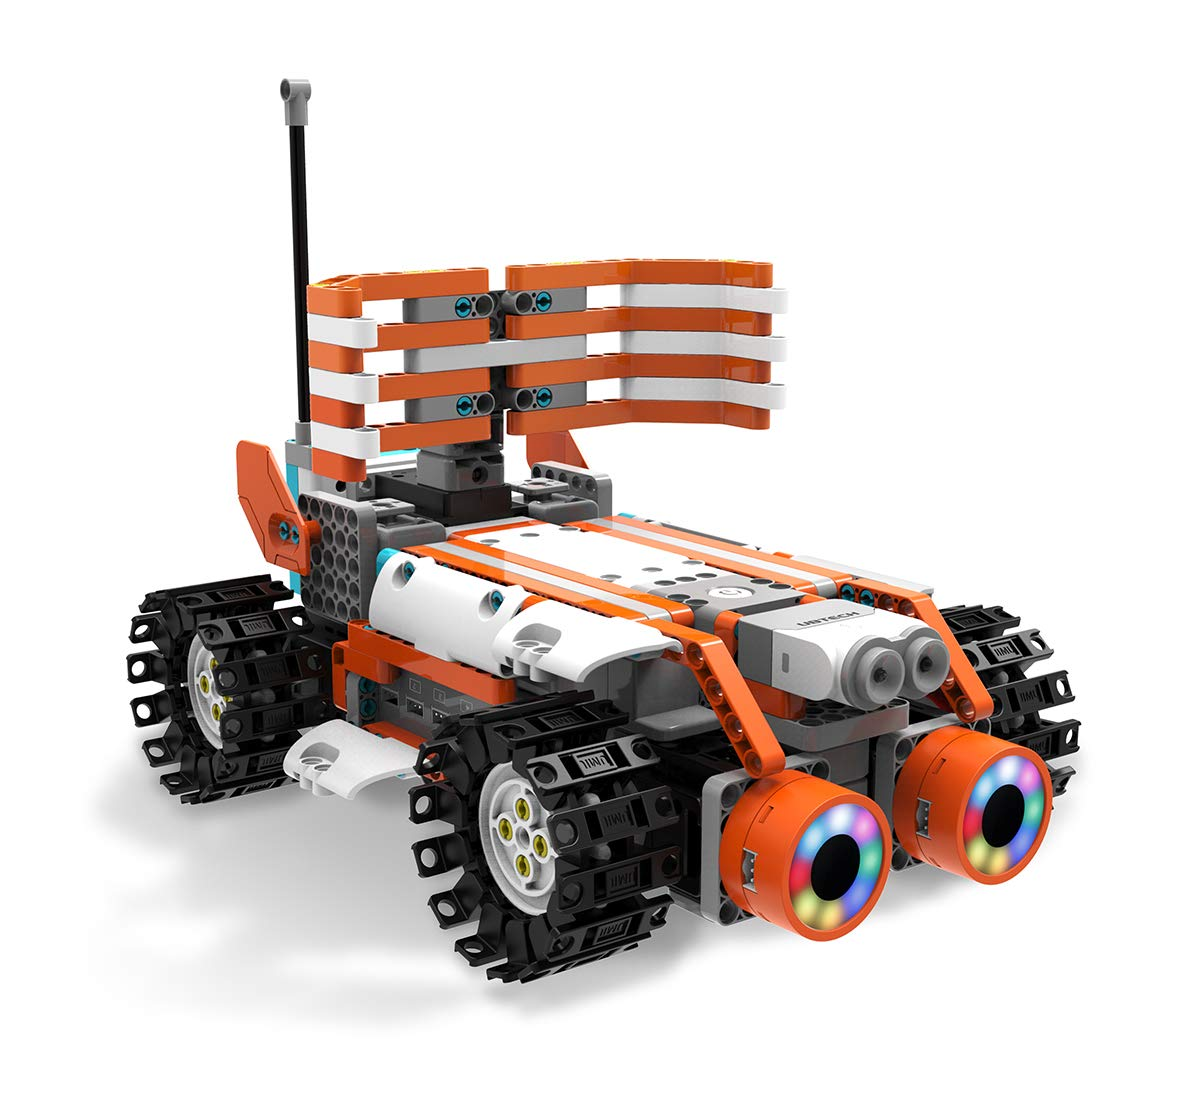 UBTECH JIMU Robot Astrobot Series: Cosmos Kit / App-Enabled Building and Coding STEM Learning Kit (387 Parts and Connectors) by UBTECH (Image #3)